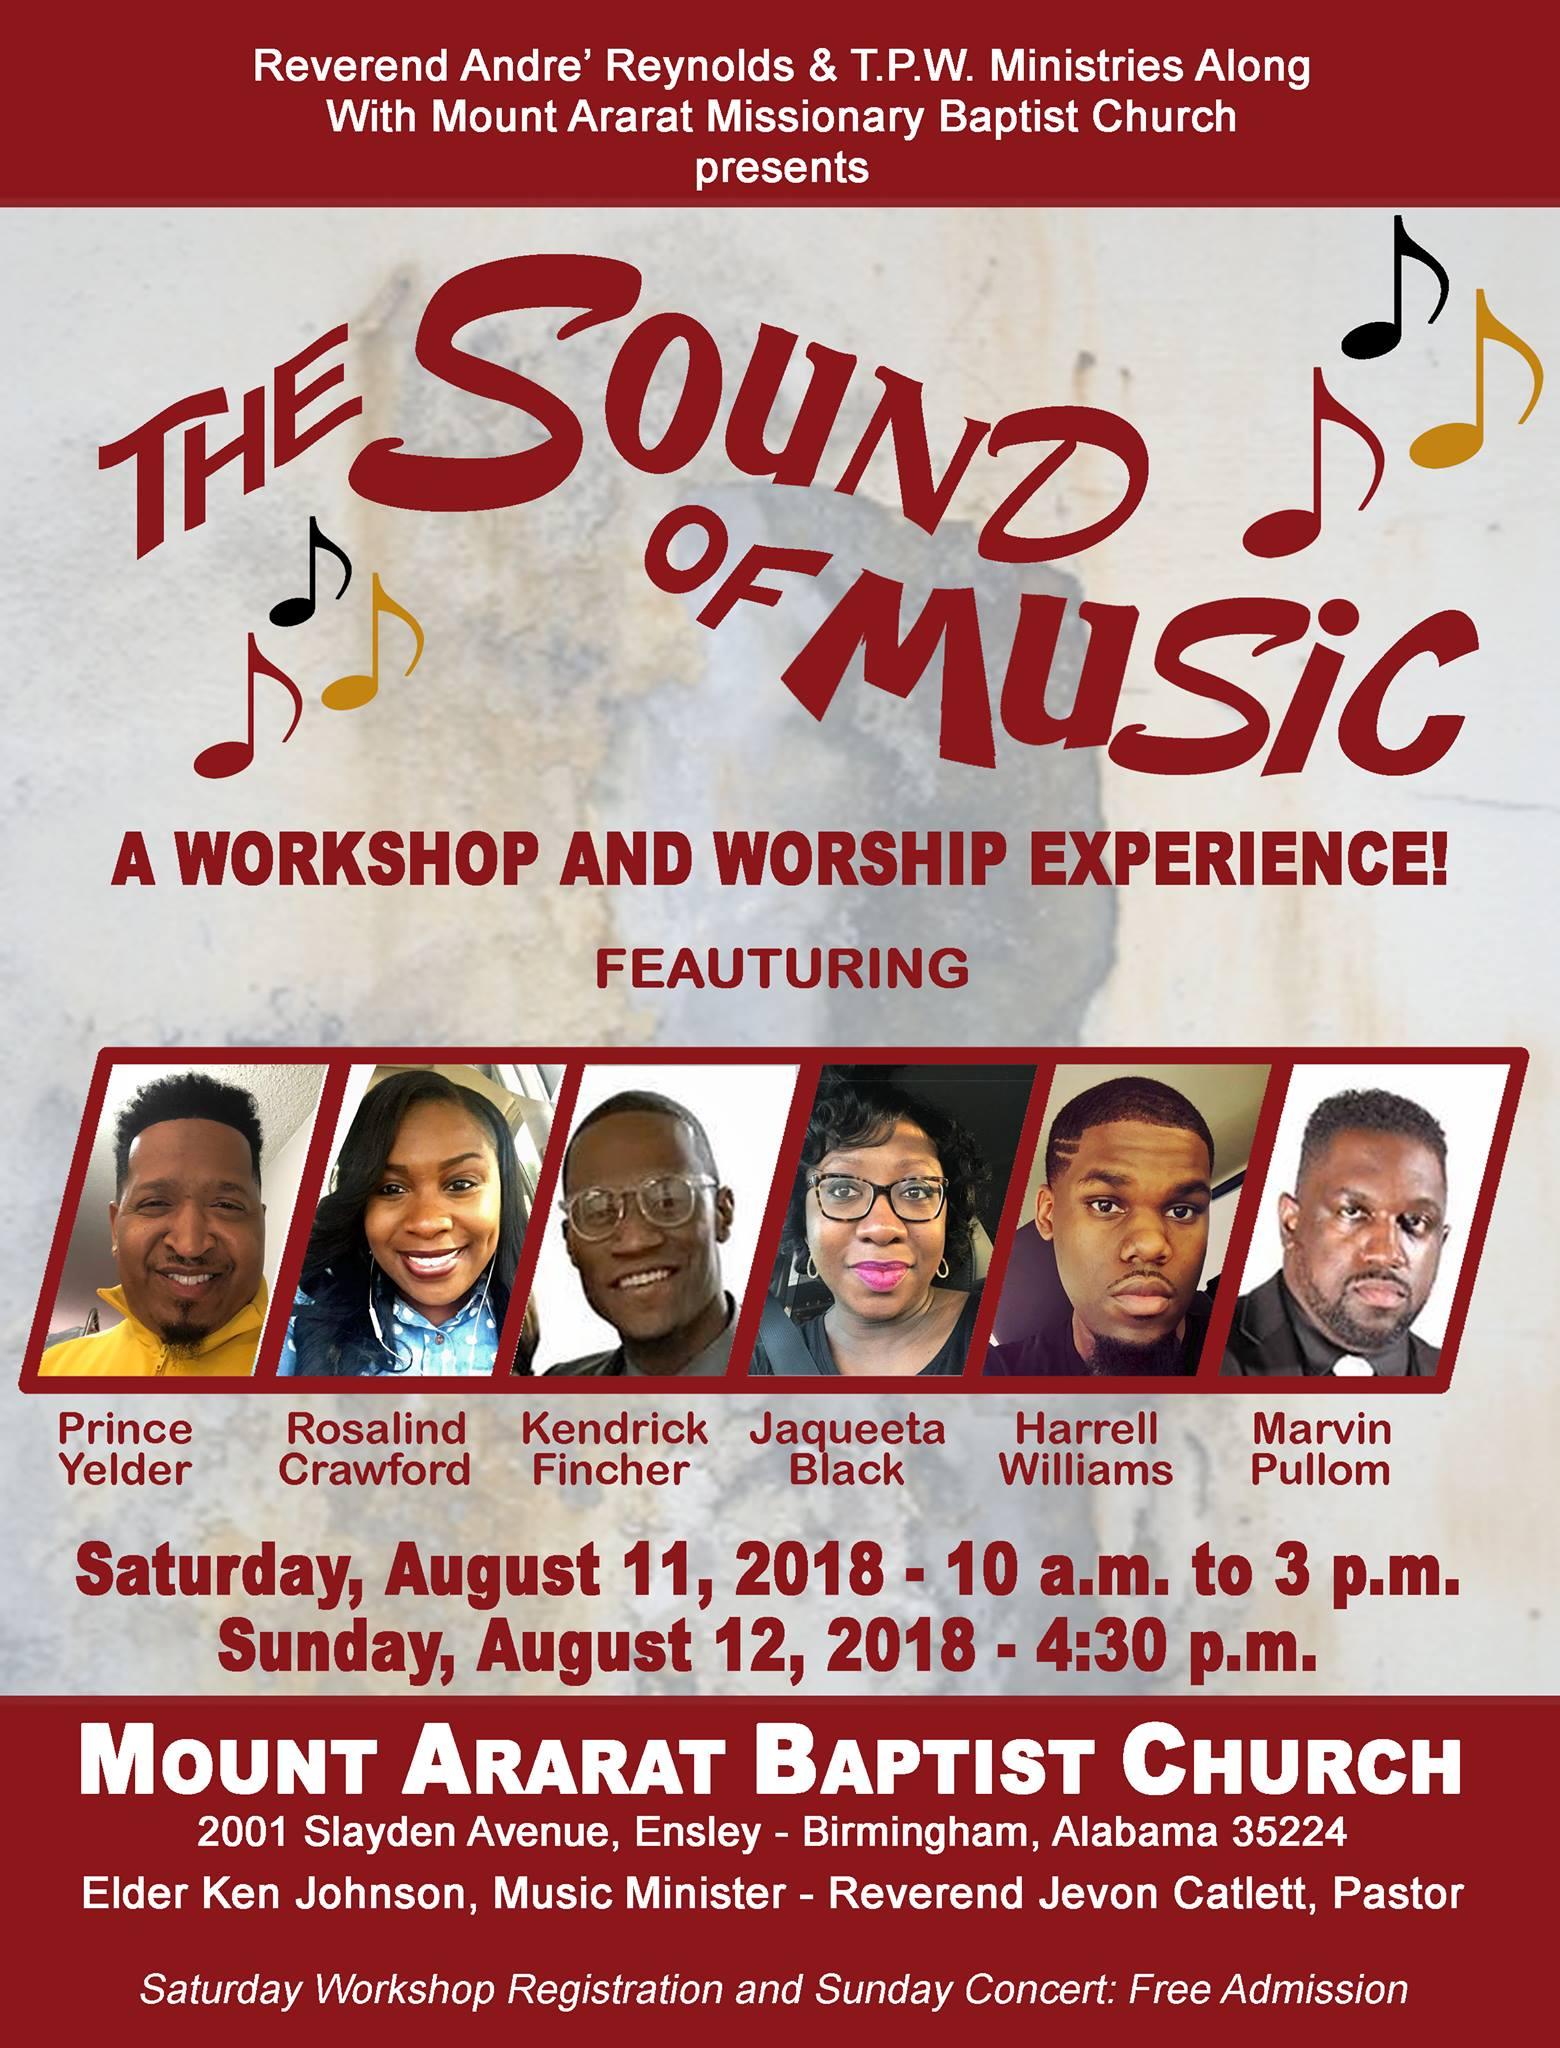 Workshop and Worship Experience